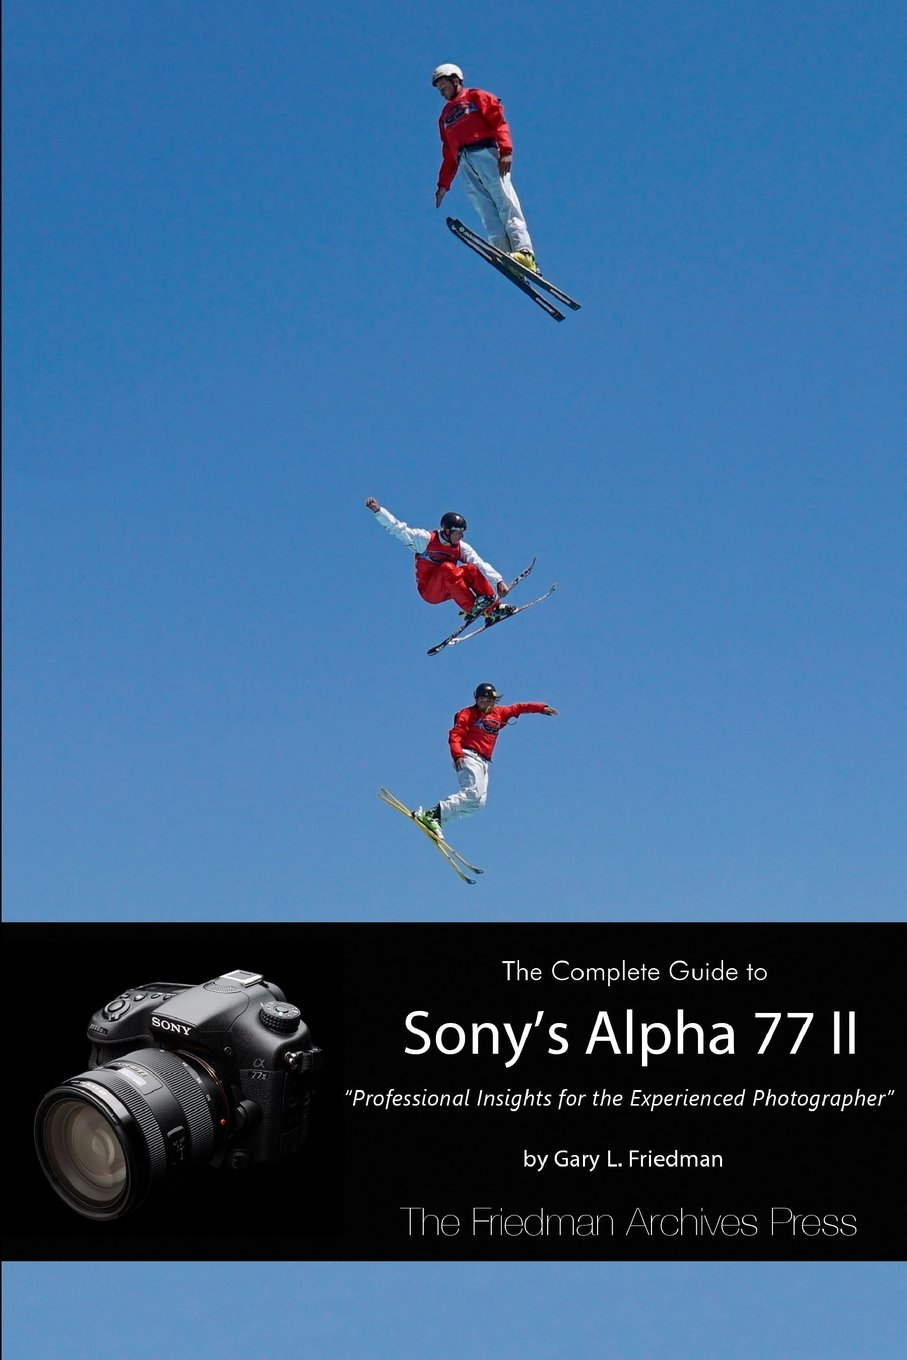 Sony alpha a77 vs a65 slt hands on preview.